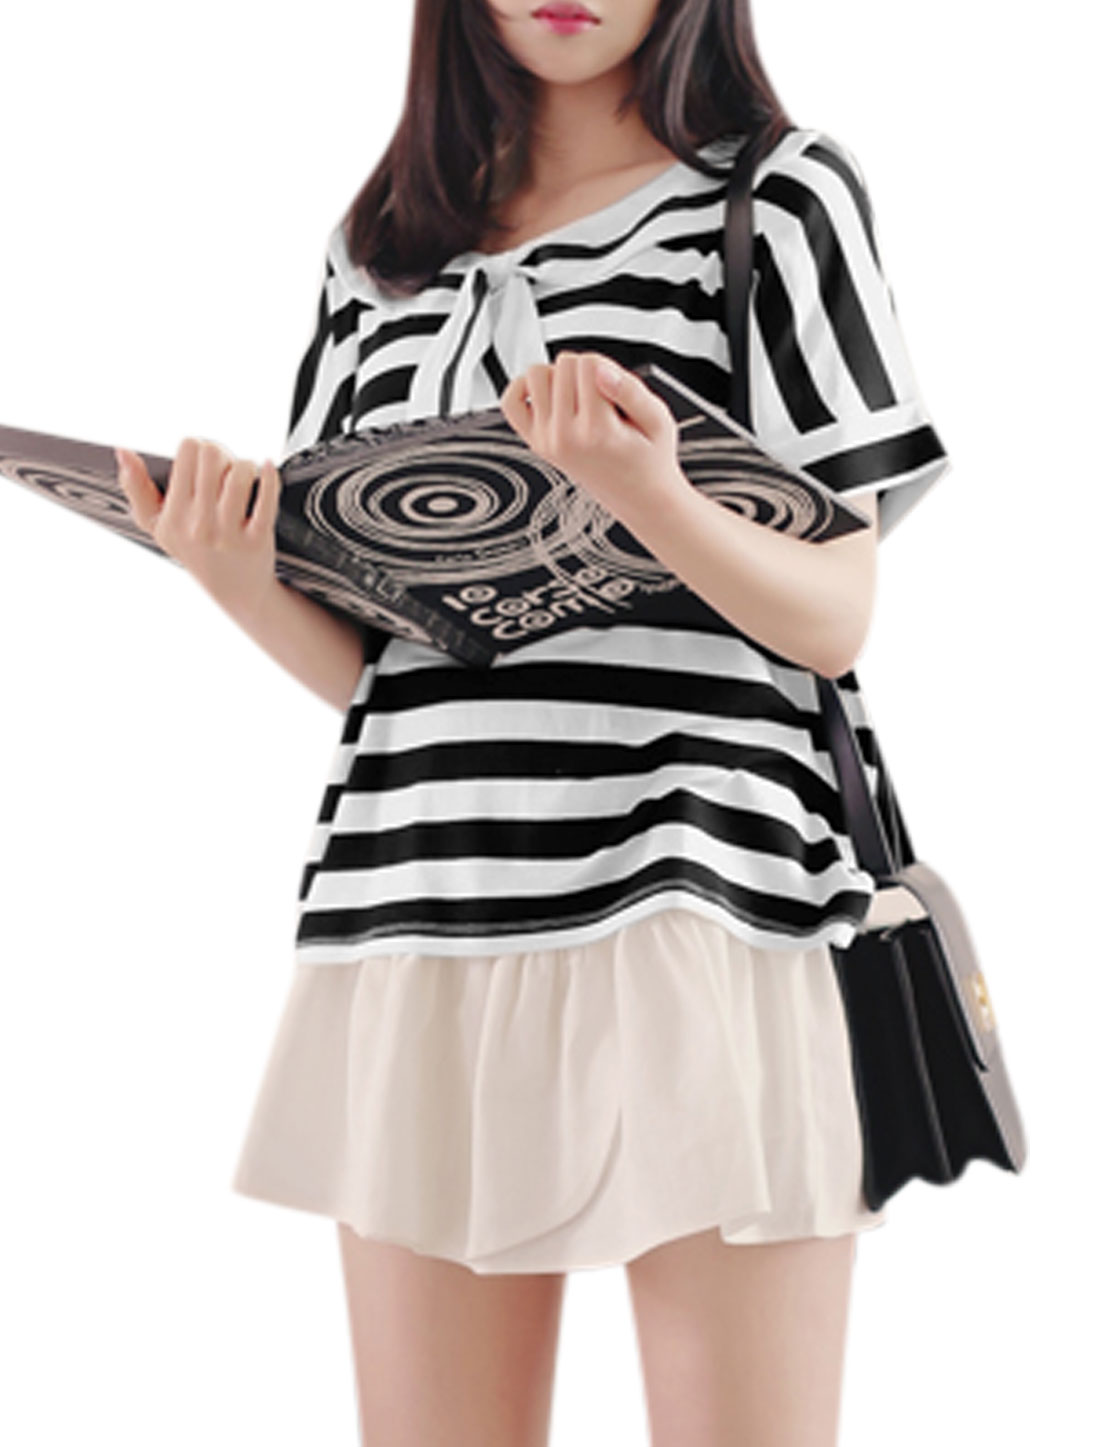 Woman Stripes Turn Down Collar Tie Bow Front Short Sleeves Top Black White XS